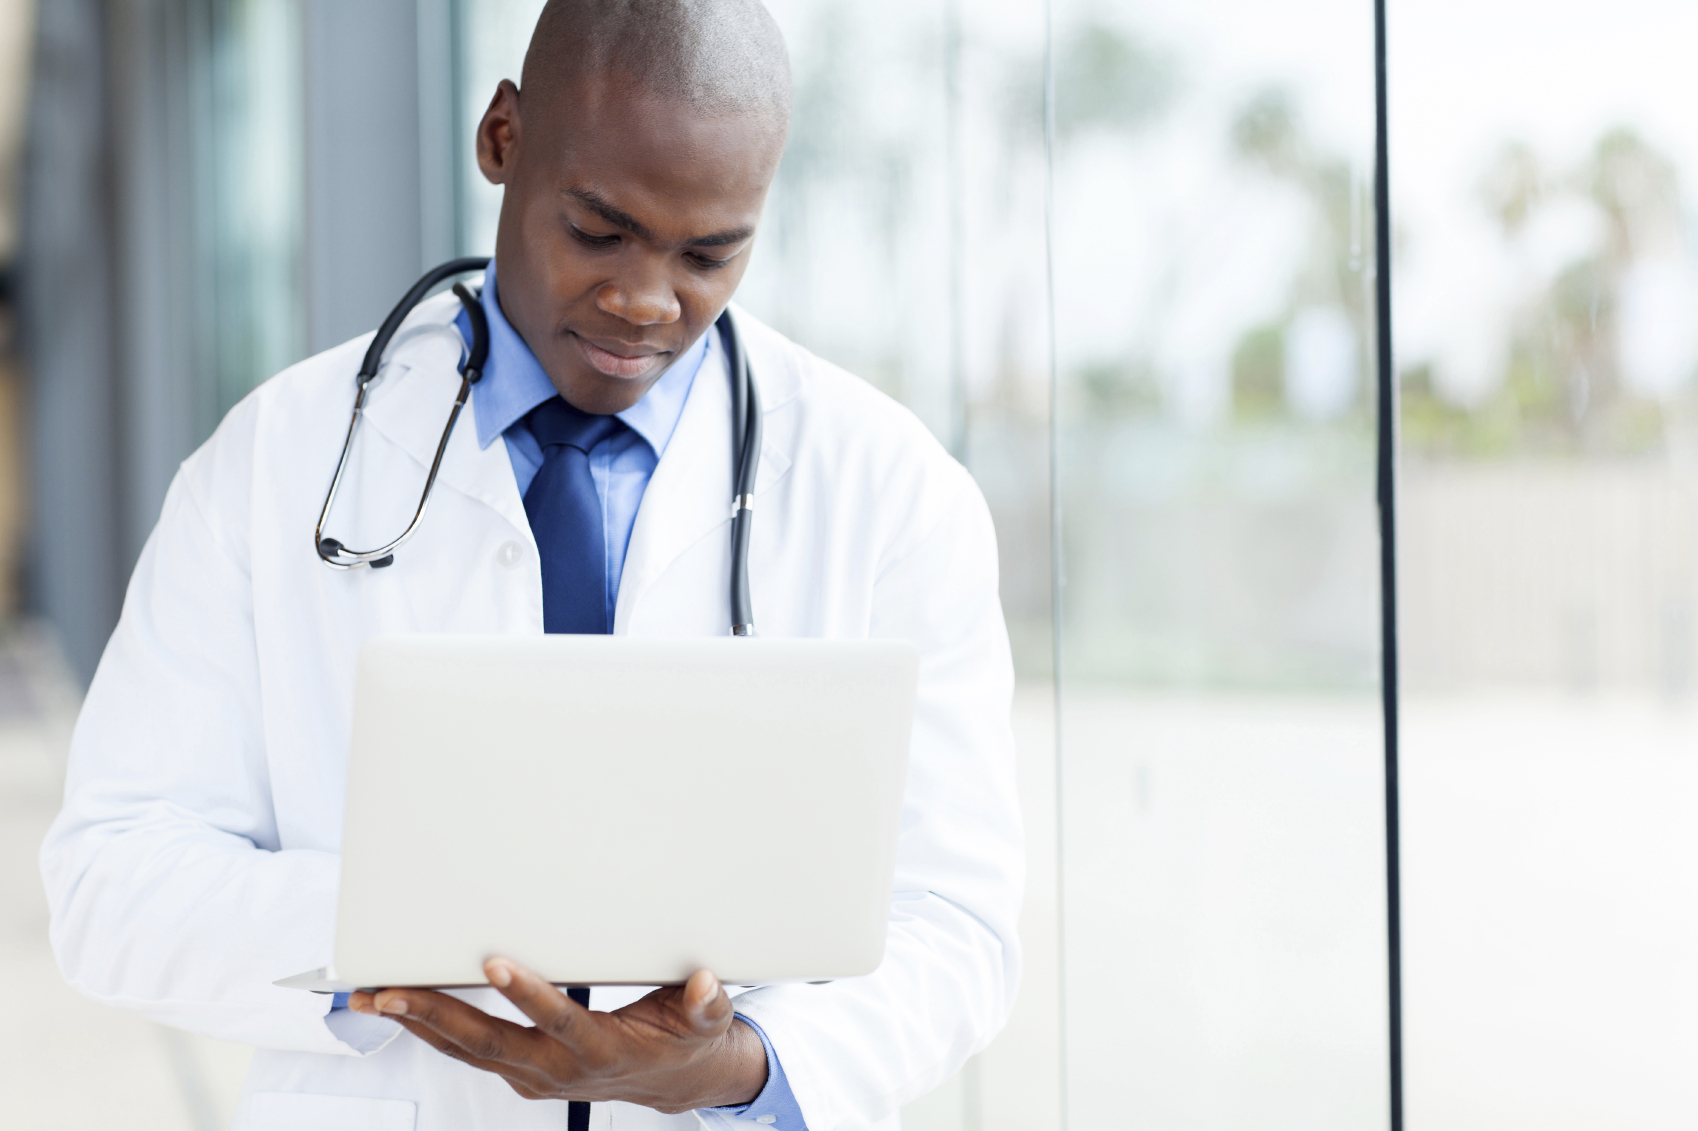 Health care provider using laptop